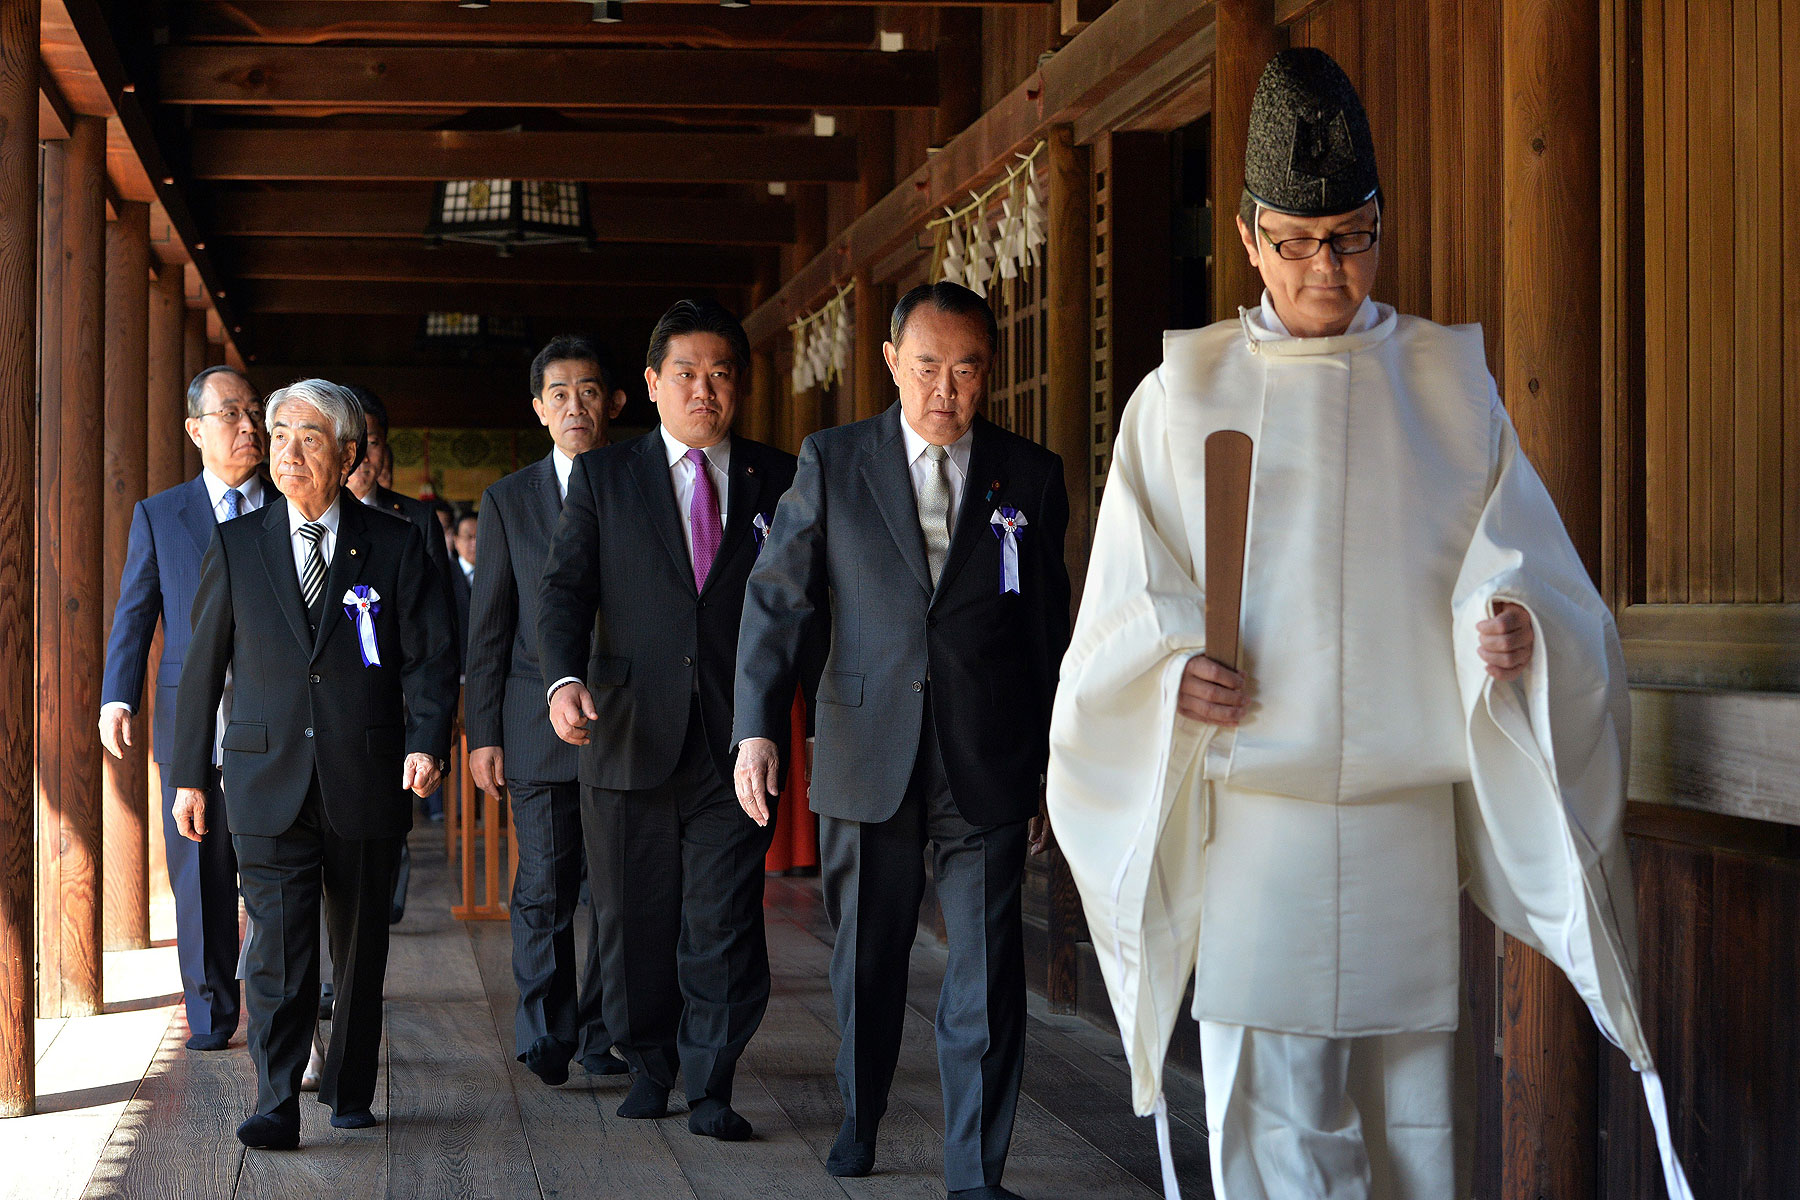 Japanese lawmakers follow a Shinto priest during a visit to the controversial Yasukuni Shrine to honor war dead during a spring festival in Tokyo on April 22, 2014